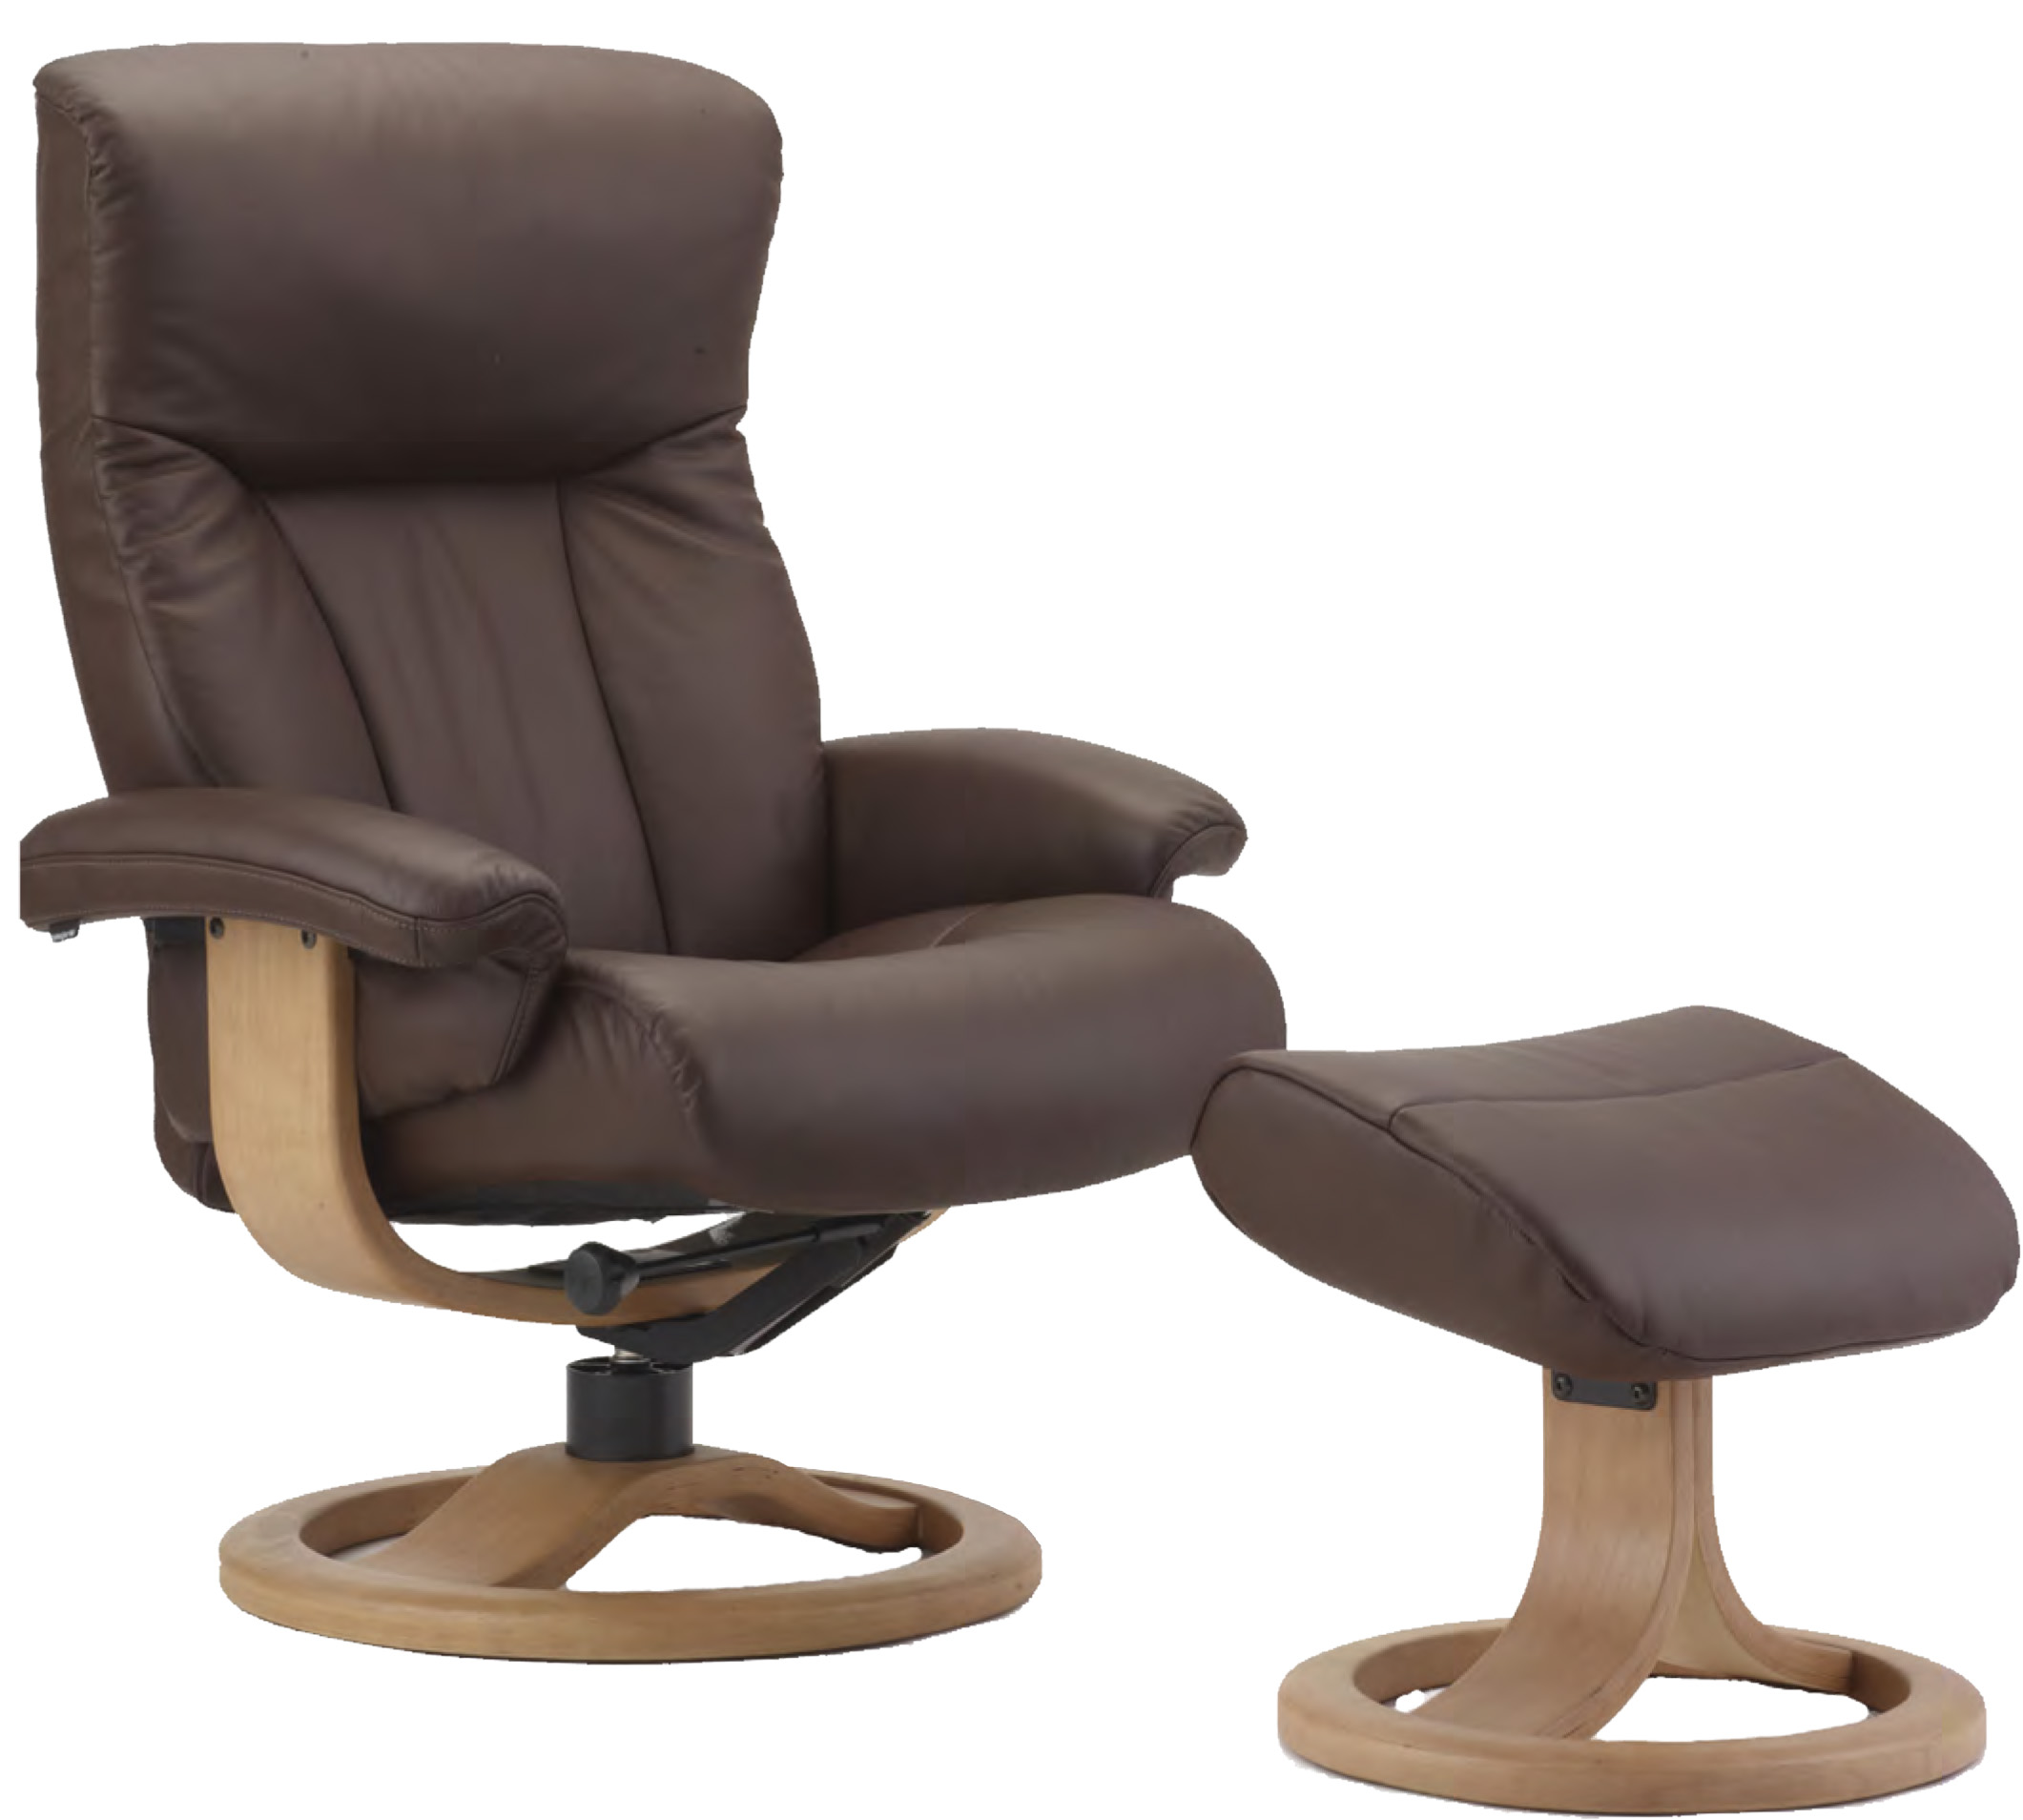 Superb Fjords Scandic Ergonomic Leather Recliner Chair And Ottoman Scandinavian